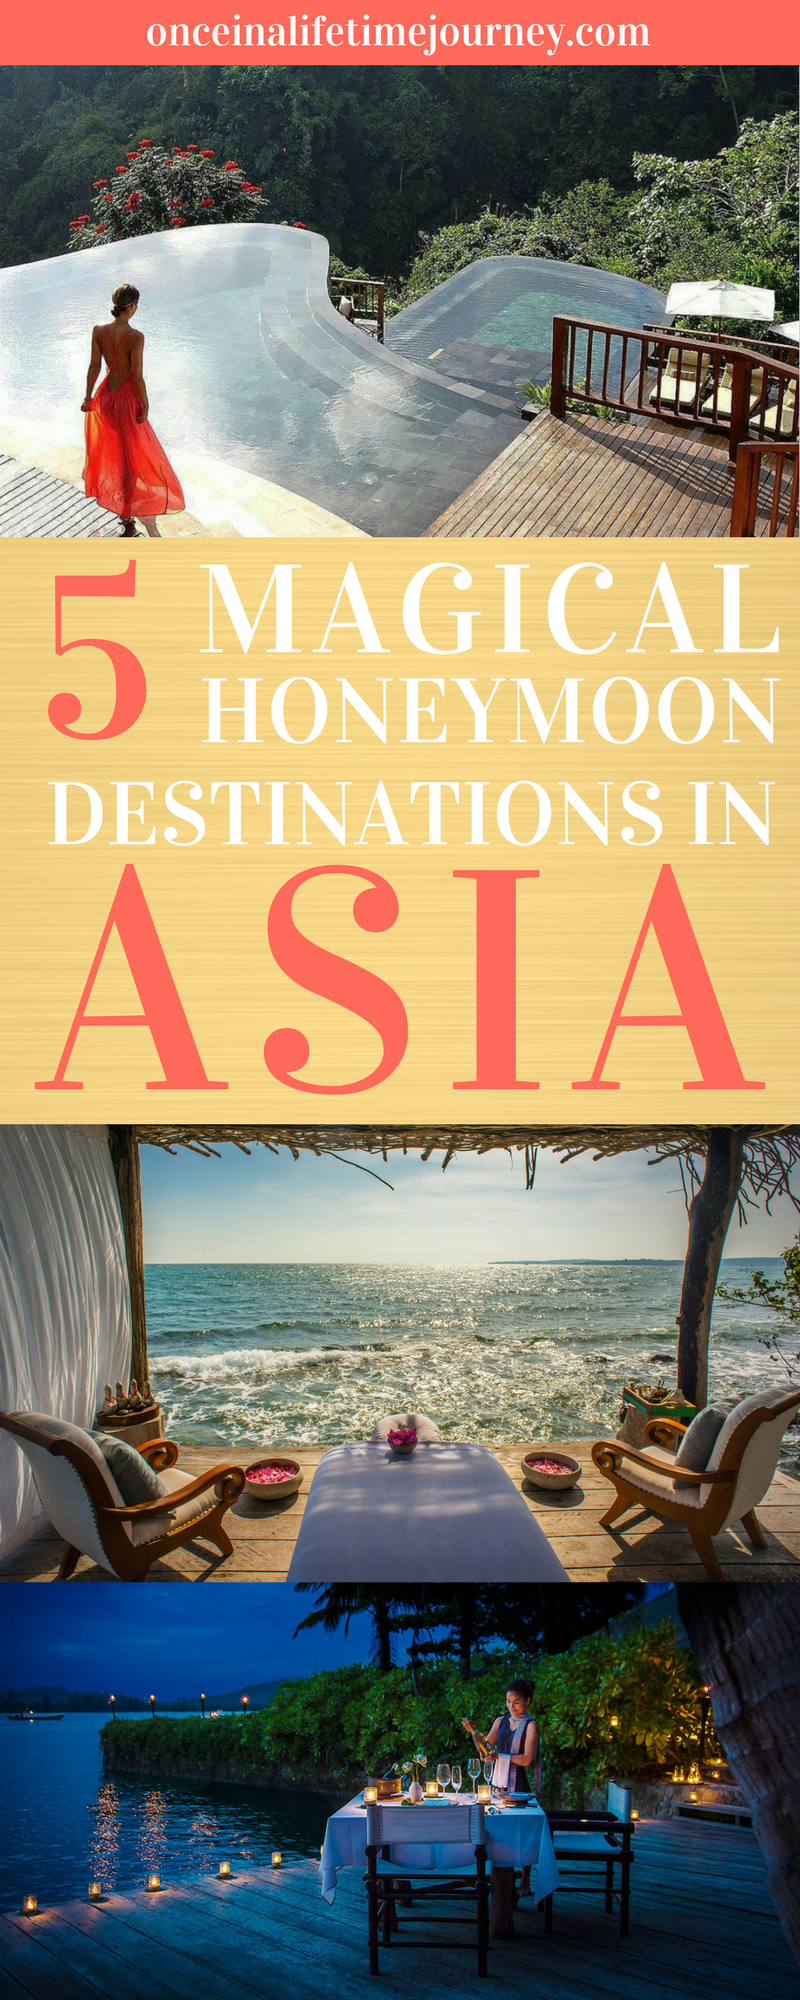 Honeymoon Destinations In Asia: 5 Magical Places You Have